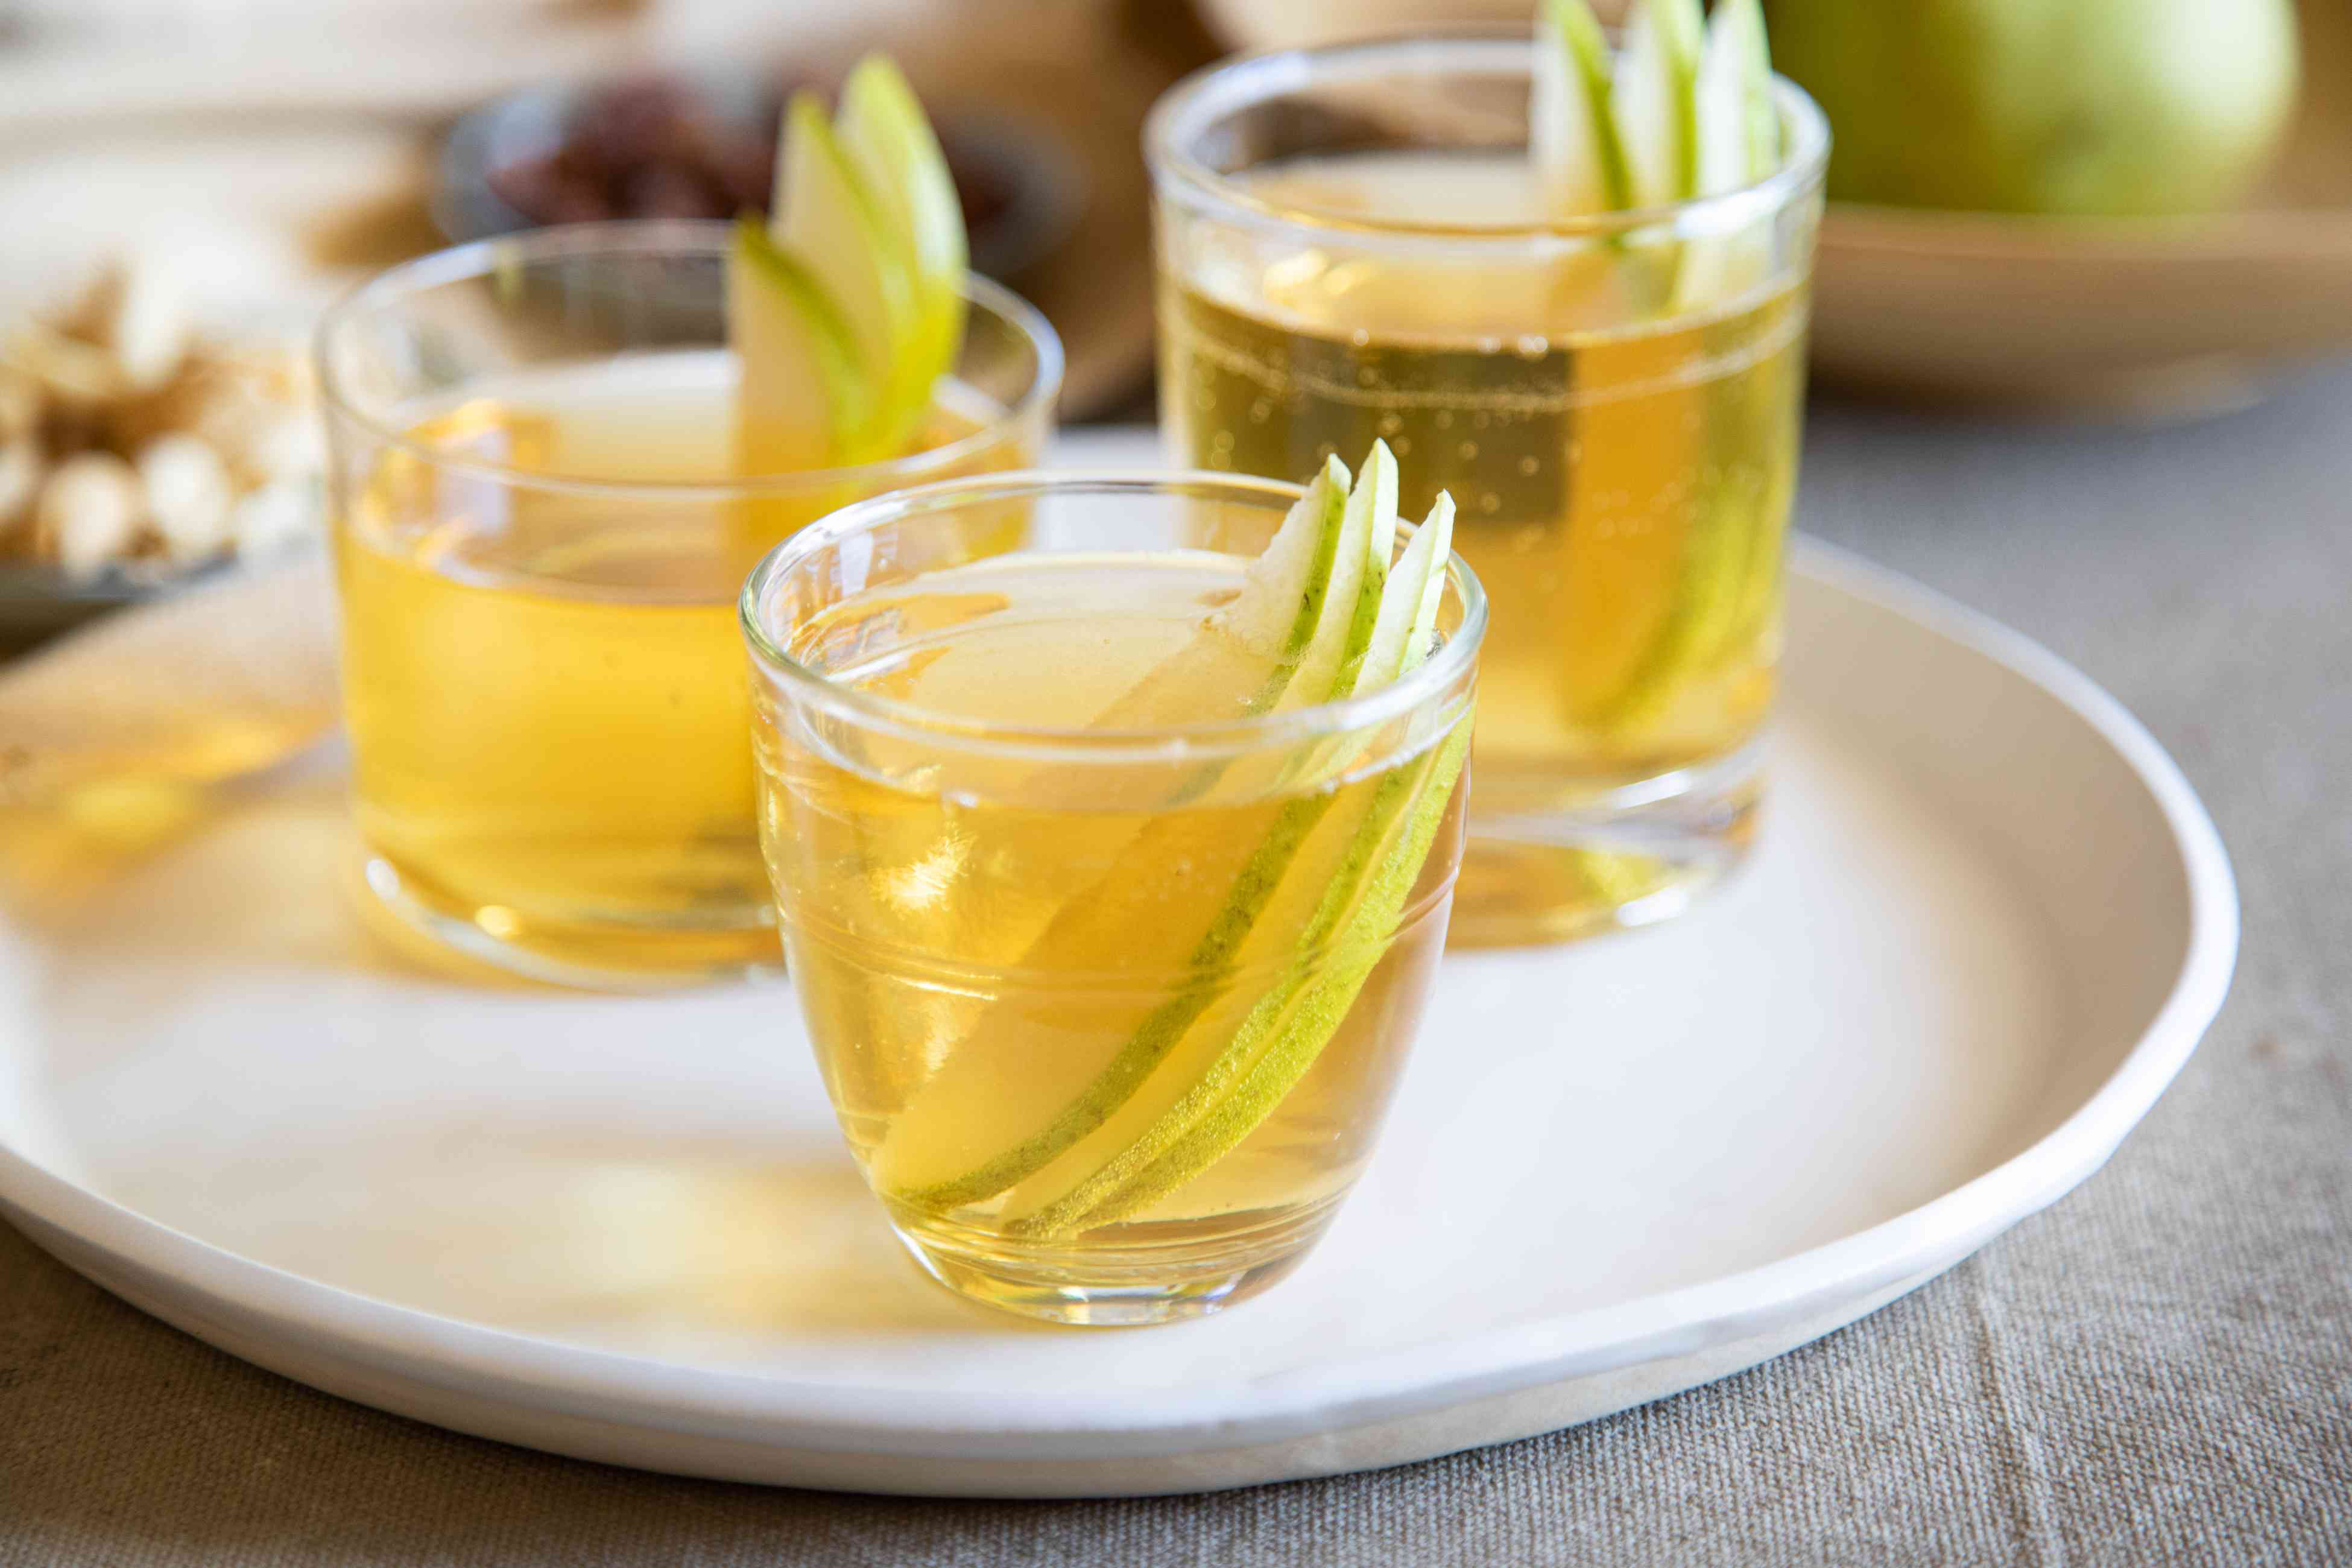 Three glasses of spiced pear bourbon punch on a tray.